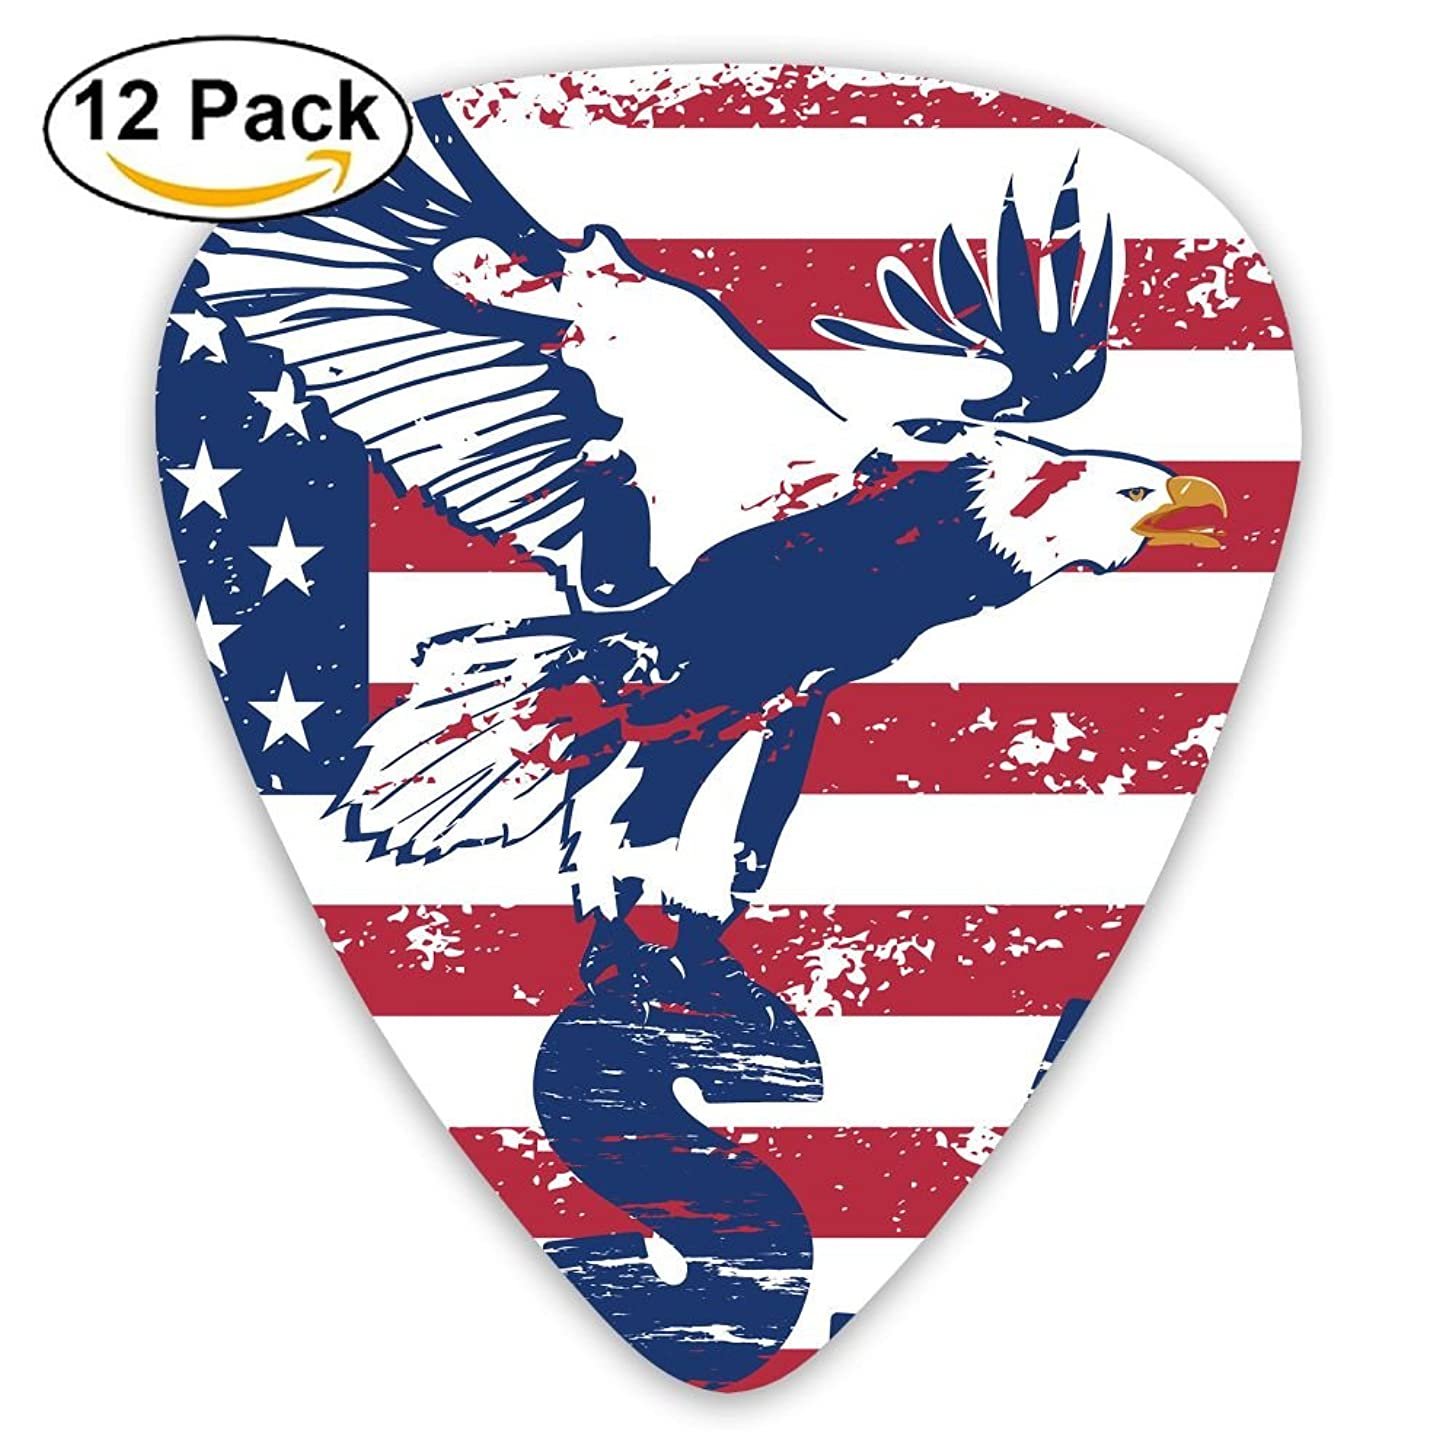 12-pack Fashion Classic Electric Guitar Picks Plectrums American Flag Stars And Eagle Instrument Standard Bass Guitarist